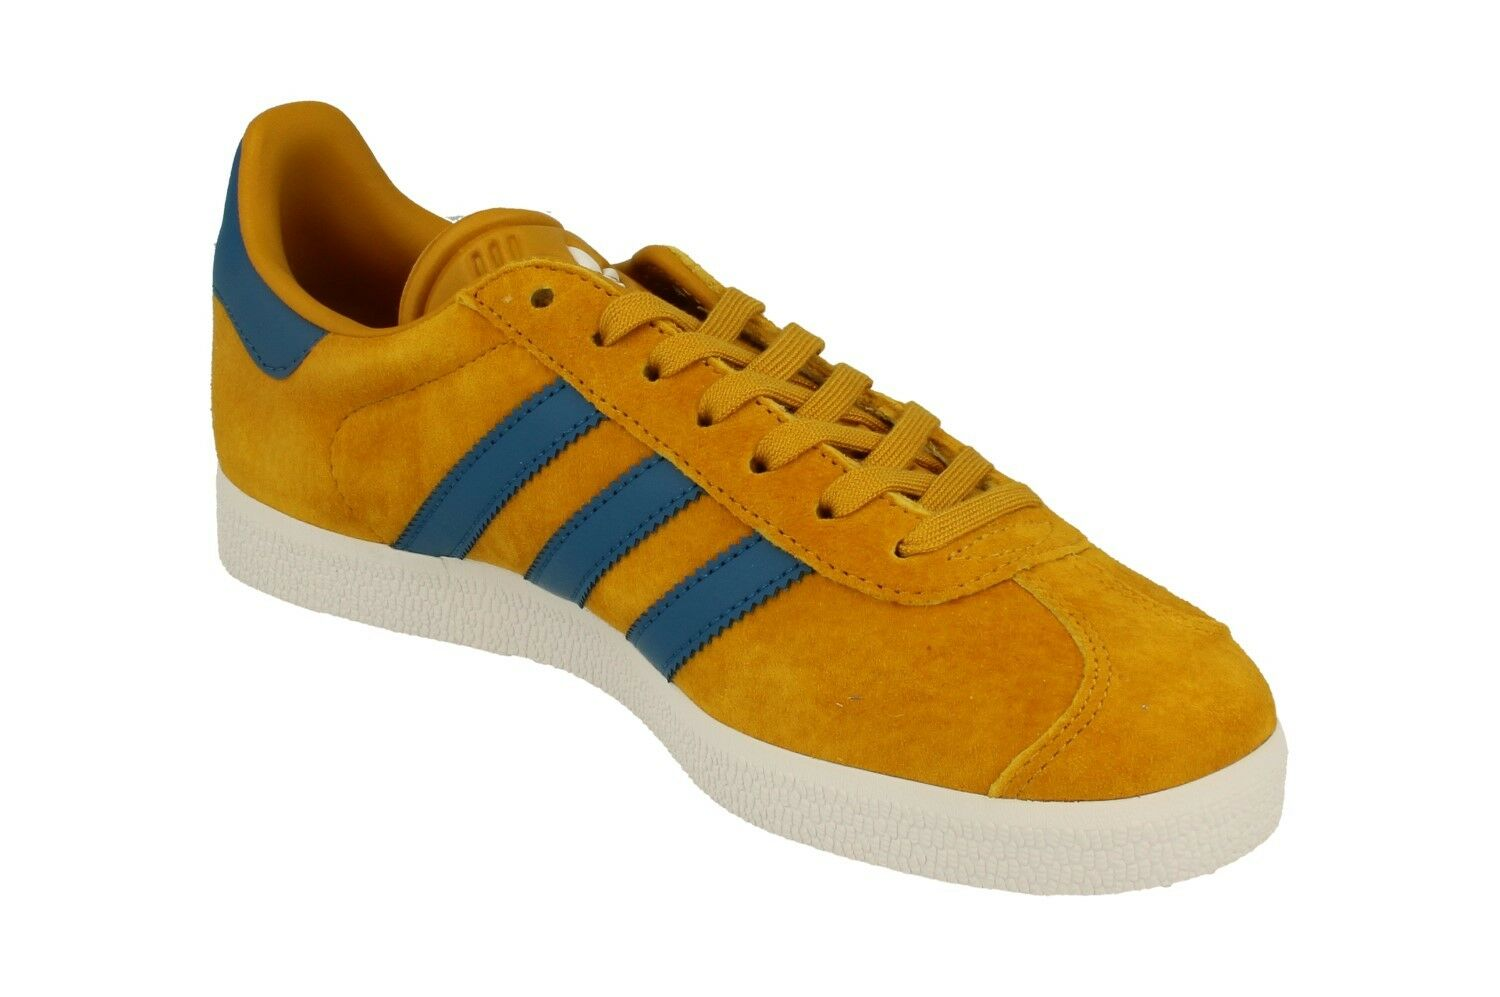 Adidas Orignals Gazelle Mens Trainers Sneakers BB5258 Shoes